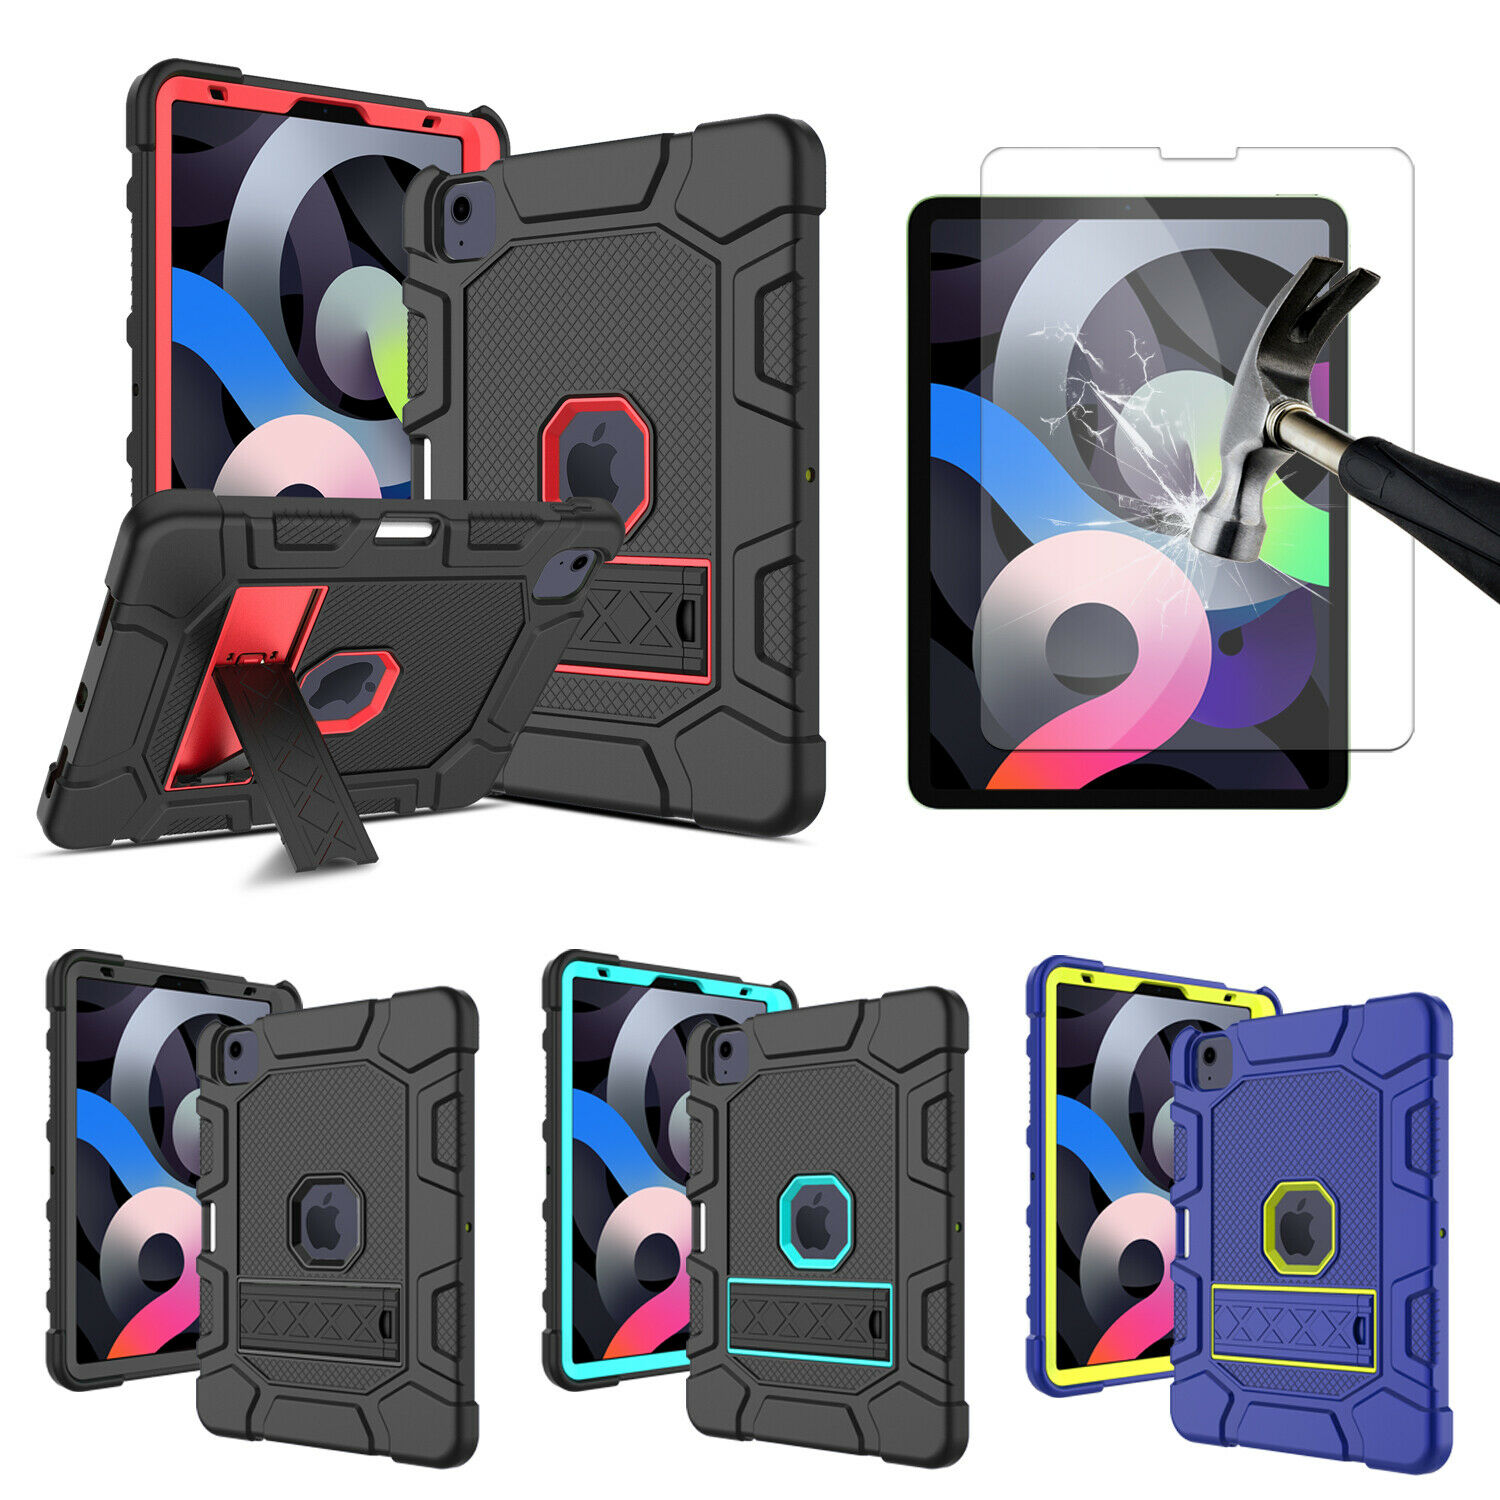 For iPad Pro 11-inch 2021/2020/2018 Tablet Stand Rugged Cover / Screen Protector Cases, Covers, Keyboard Folios